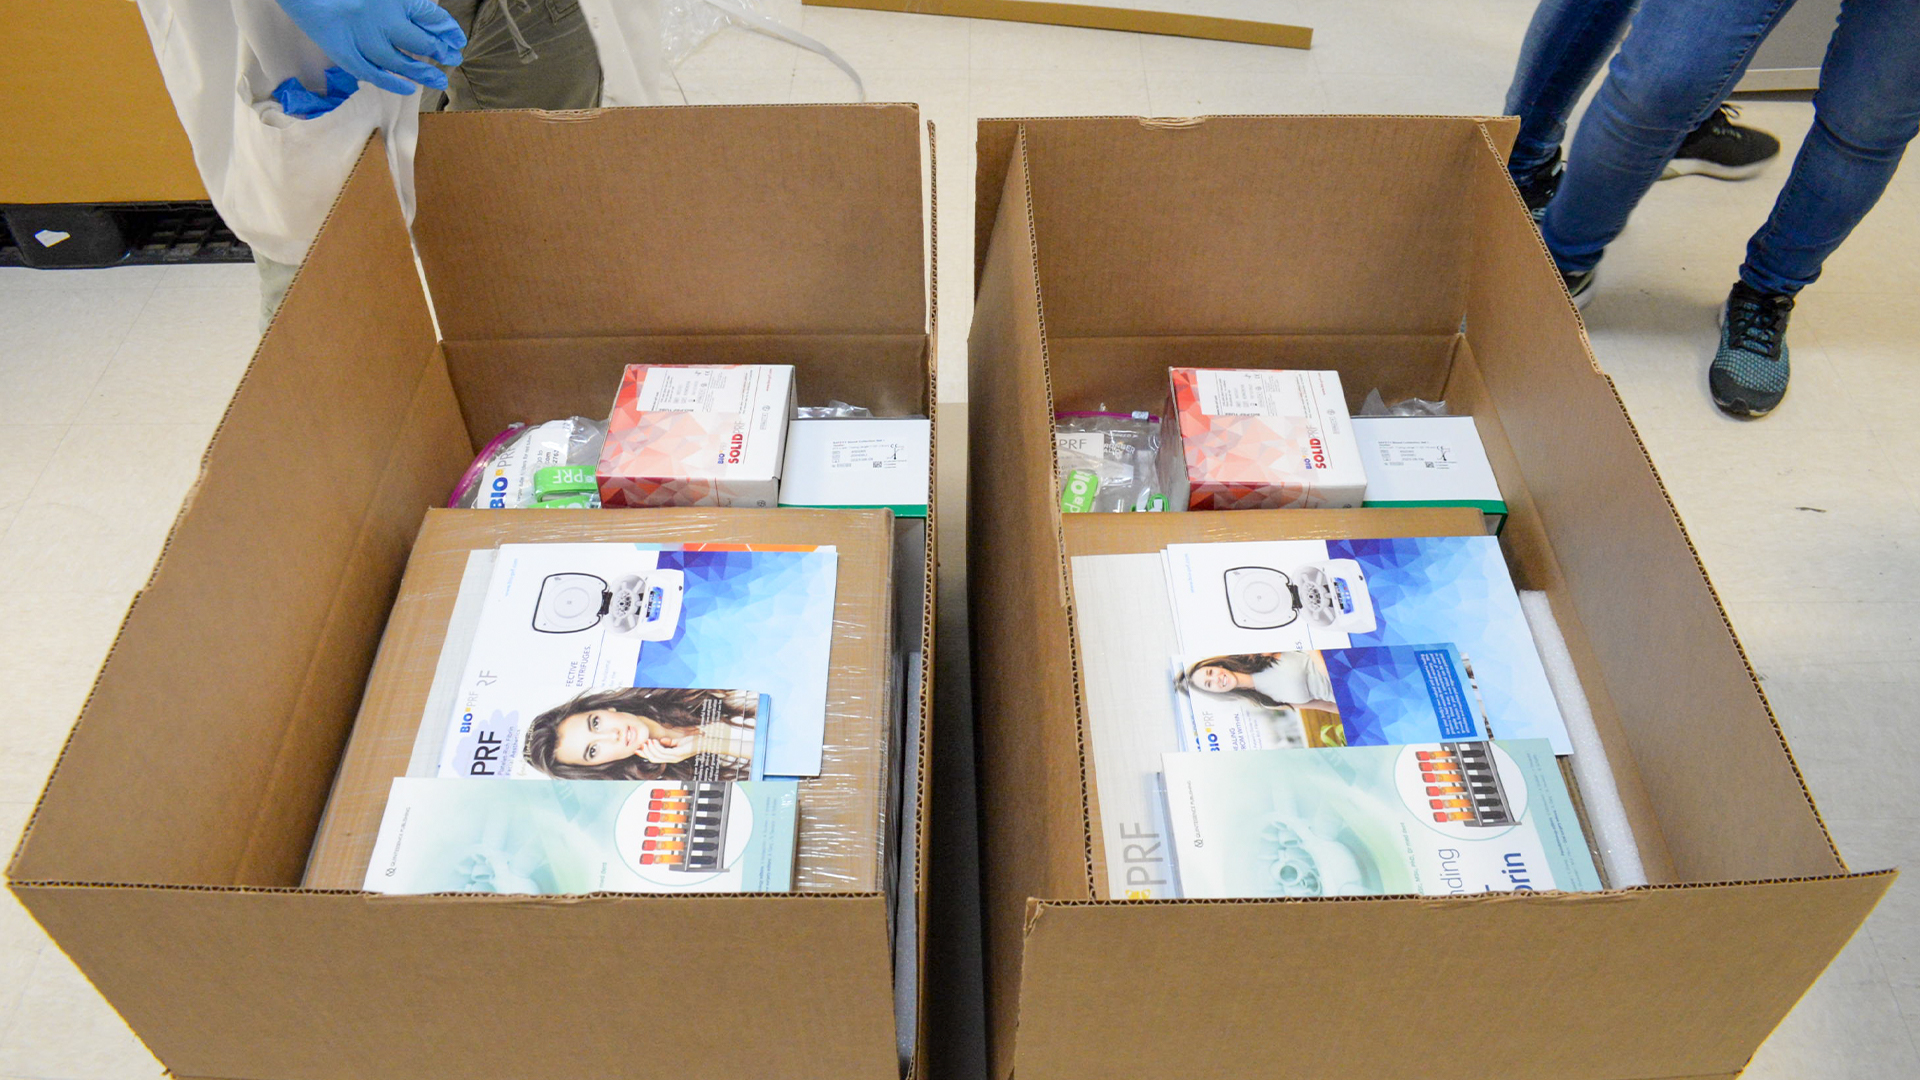 two boxes with medical devices and promotional materials